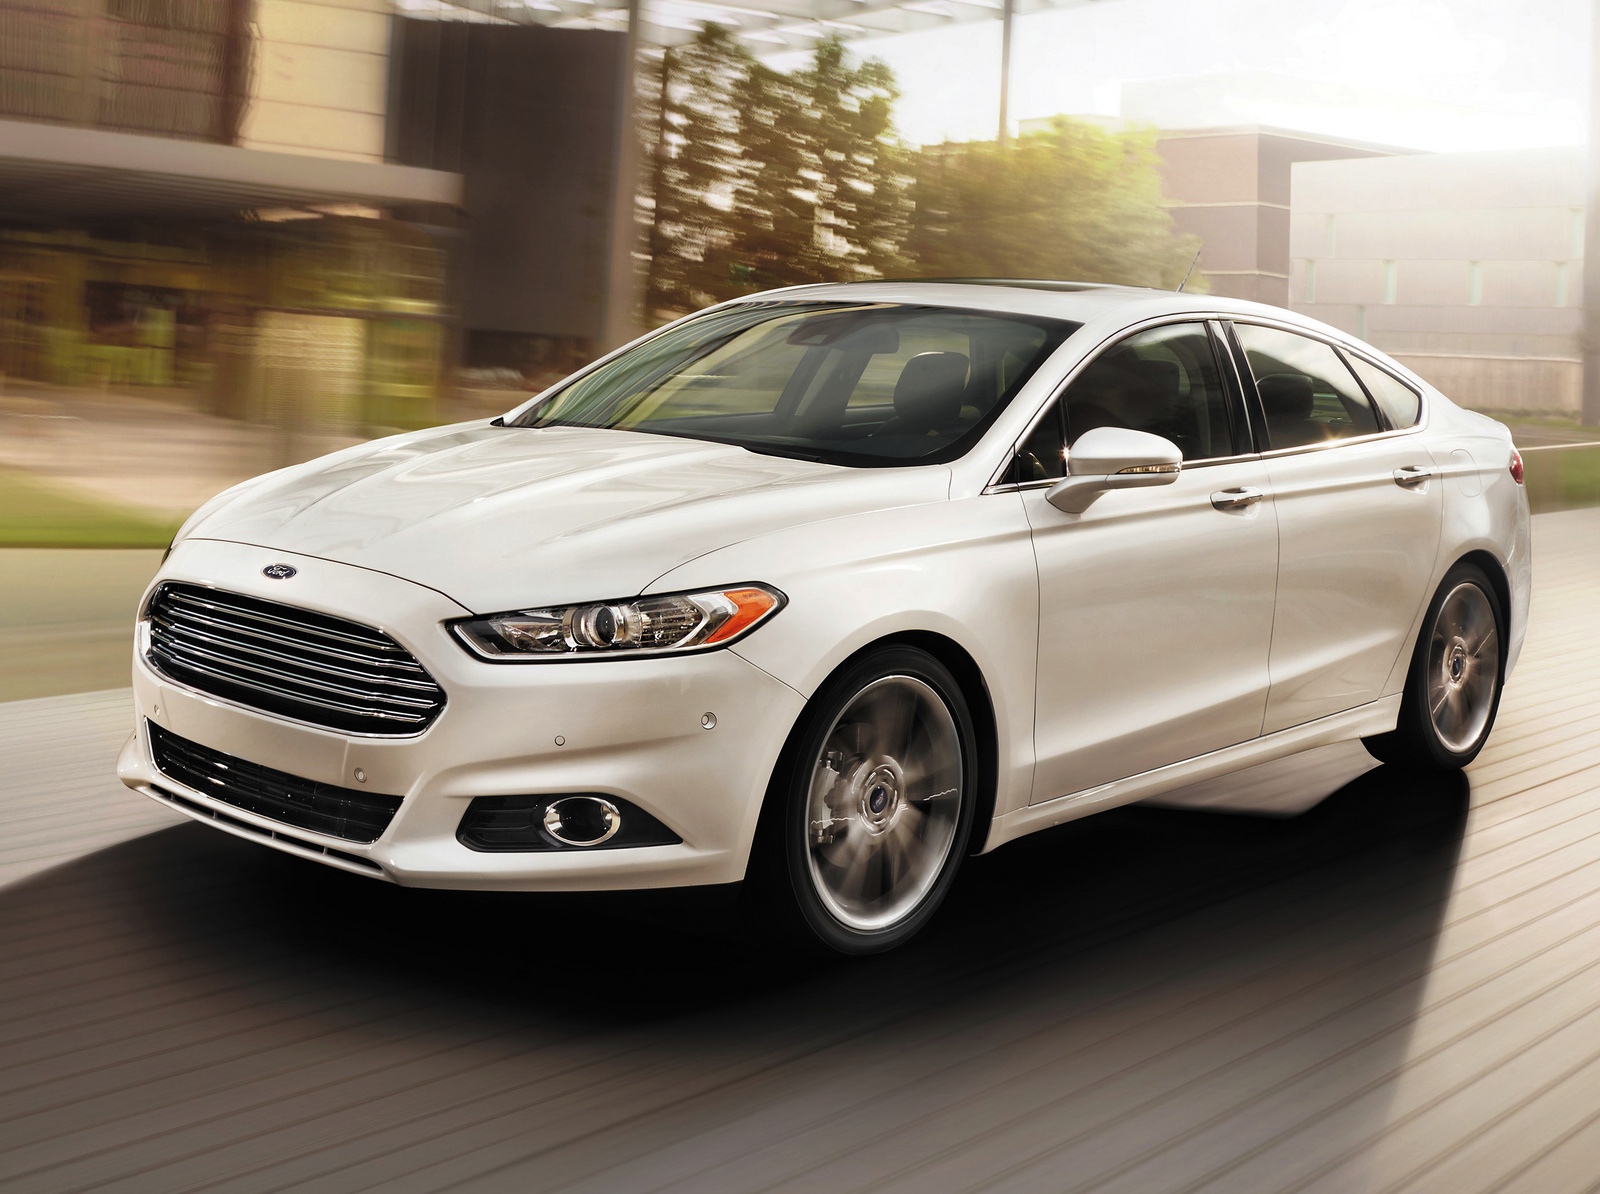 2014 Ford Fusion Test Drive Review